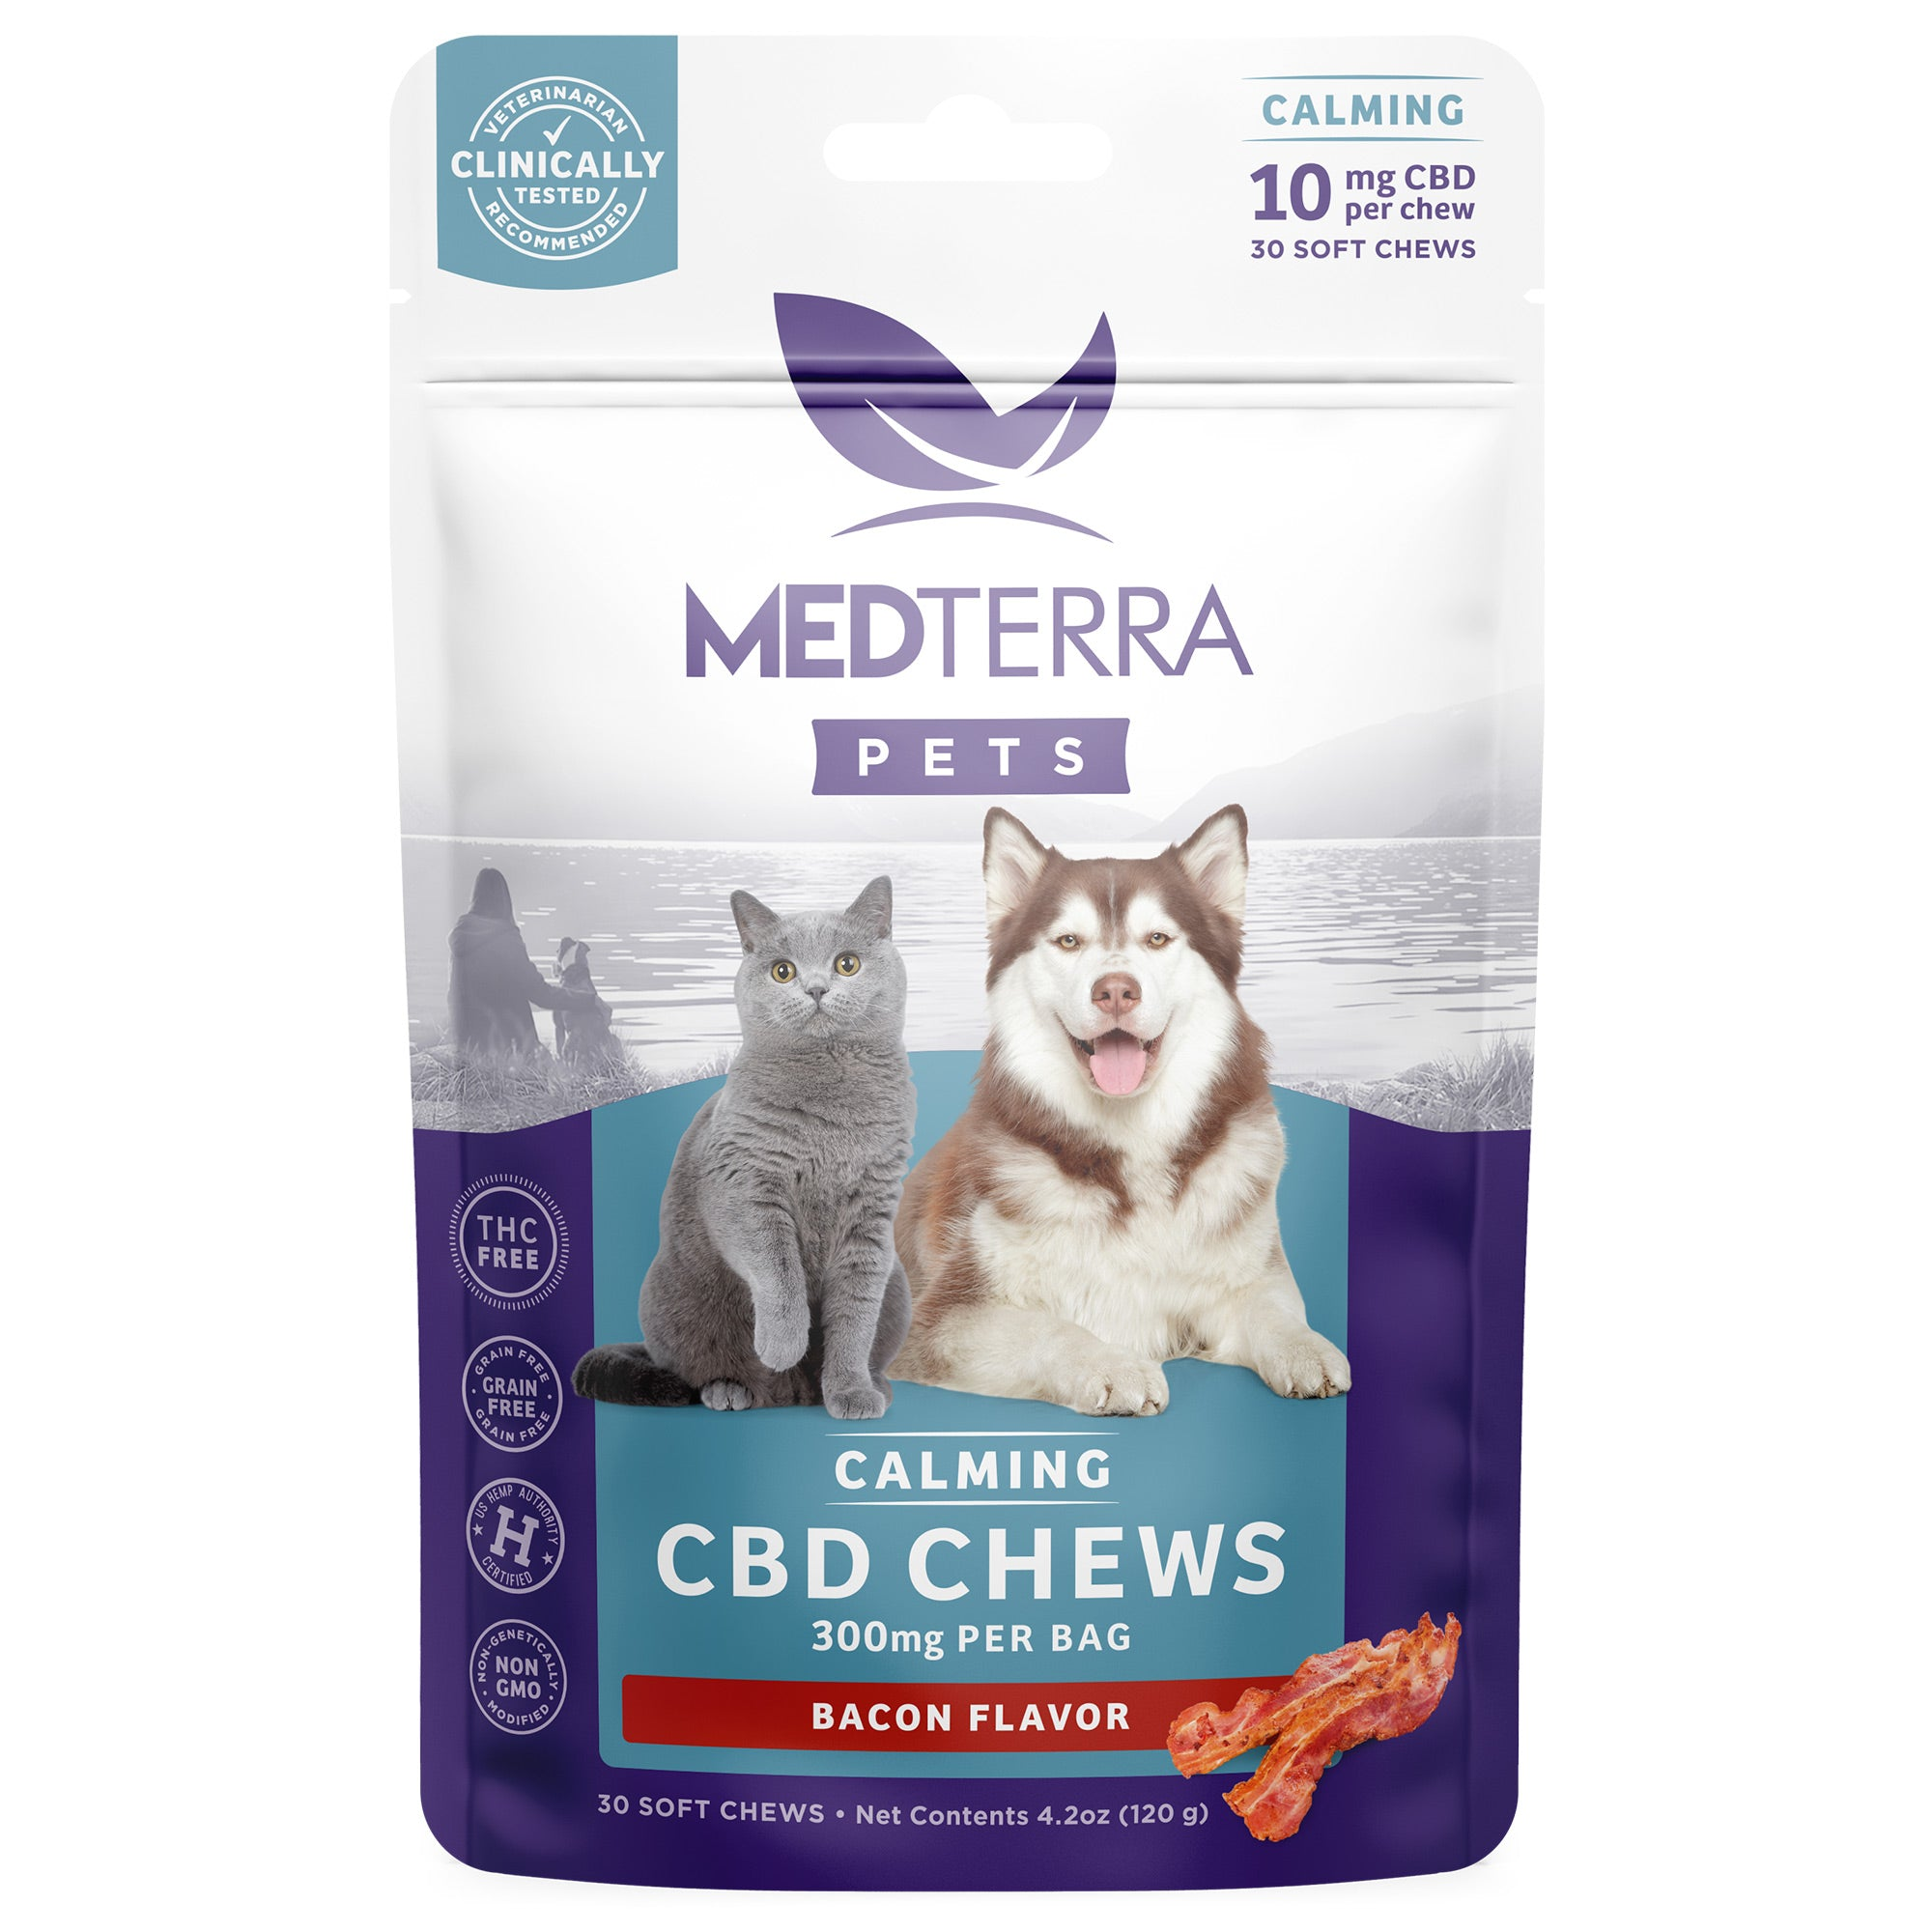 Medterra CBD Calming Chews for Pets - Bacon Flavor